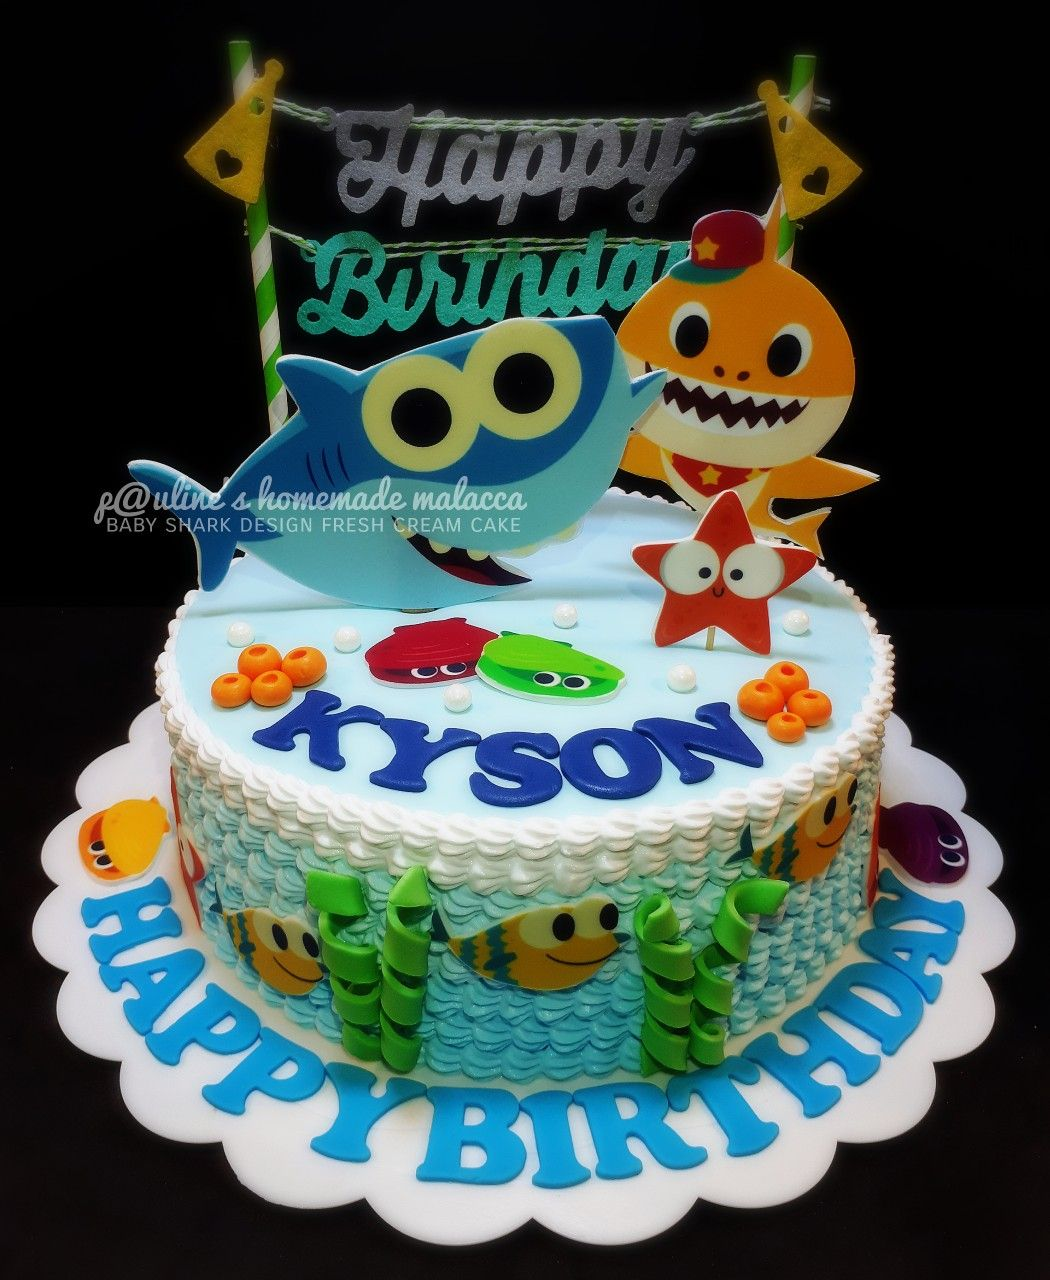 Baby Shark Design Fresh Cream Cake Paulineshomemademalacca Baby